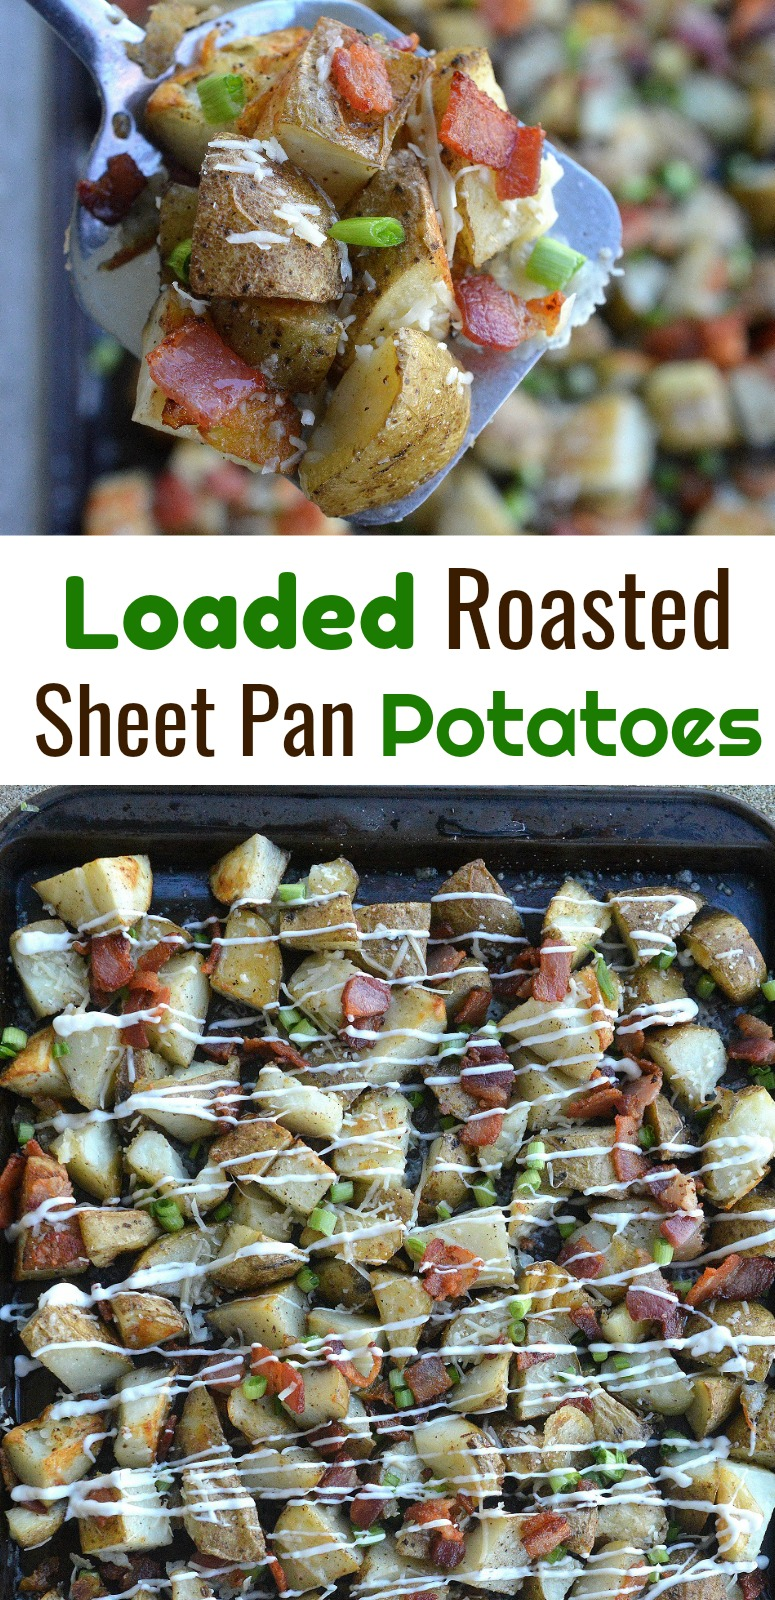 Loaded Roasted Sheet Pan Potatoes! Quick, easy and full of flavor!